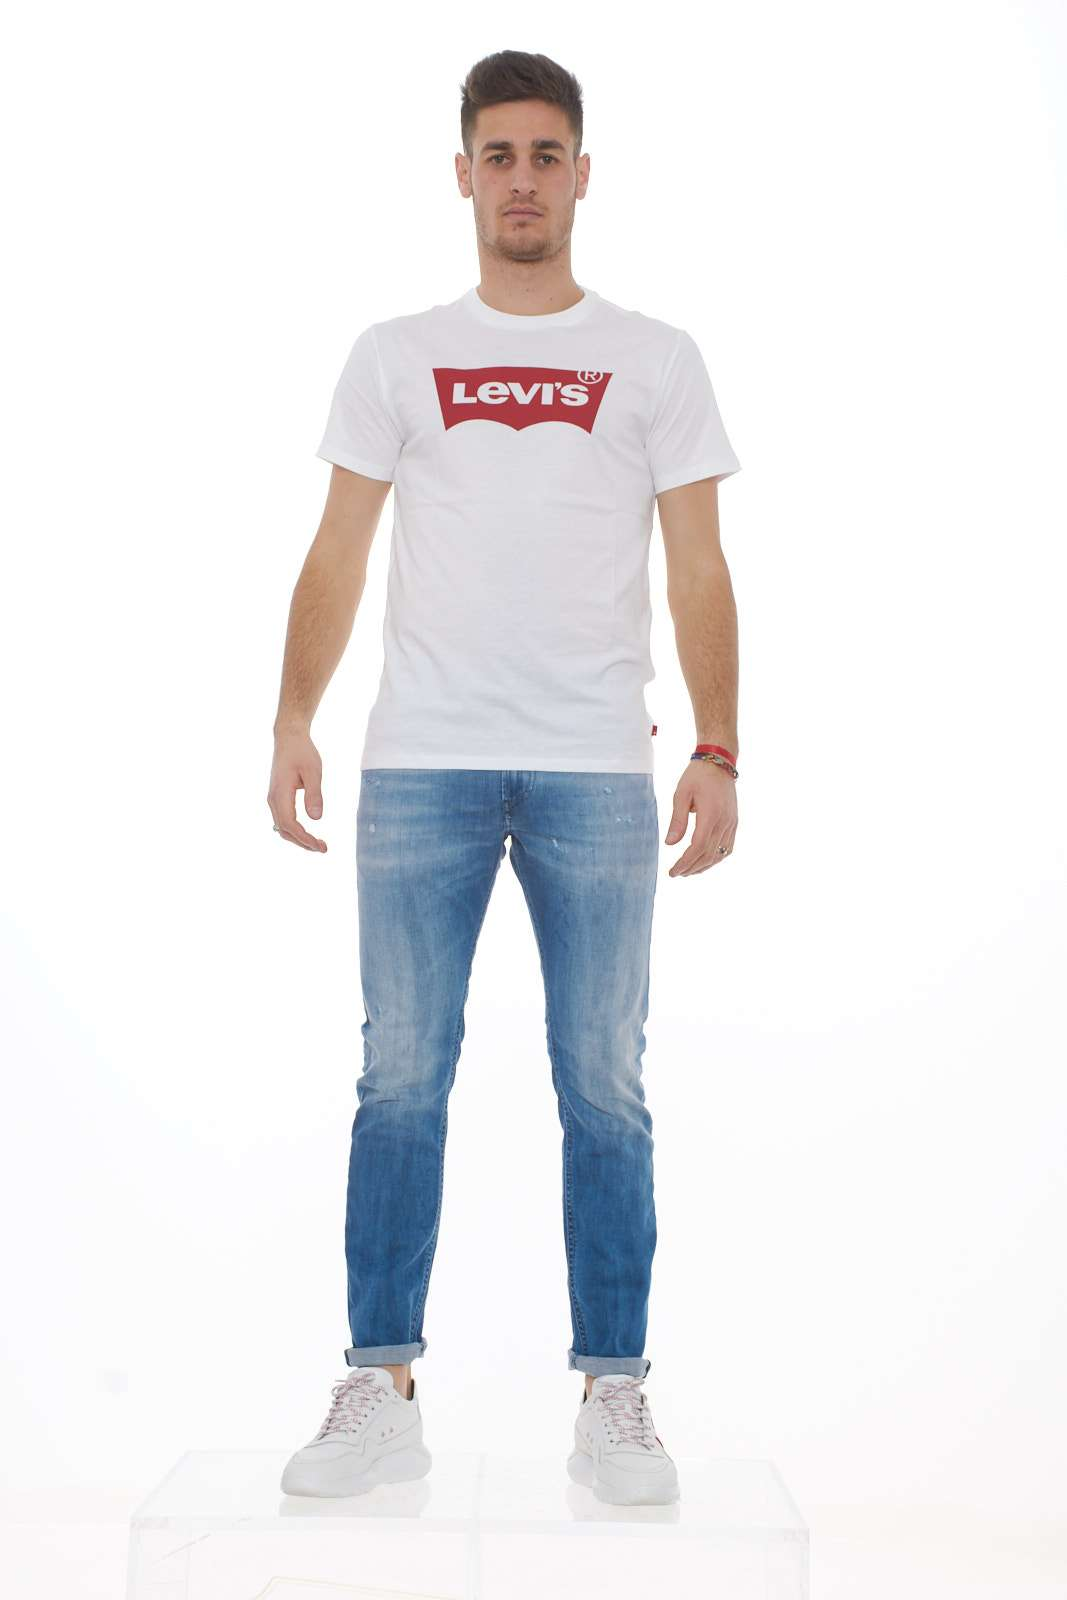 https://www.parmax.com/media/catalog/product/a/i/PE-outlet_parmax-t-shirt-uomo-Levis-17783-D_1.jpg